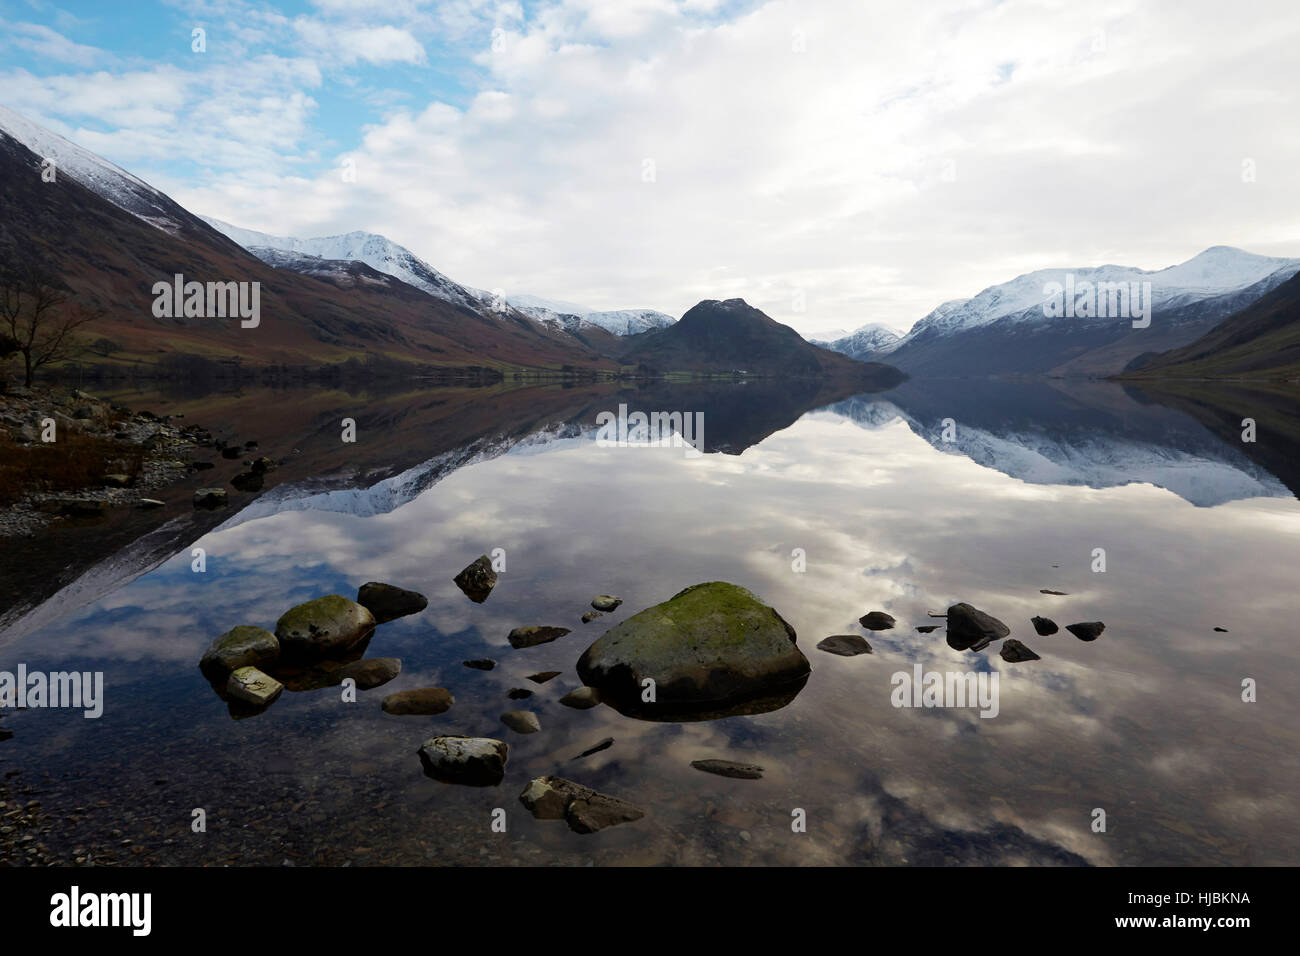 Mountains and rocks reflected in the calm surface of Crummock Water, Keswick, Cumbria, Lake District, England UK. - Stock Image